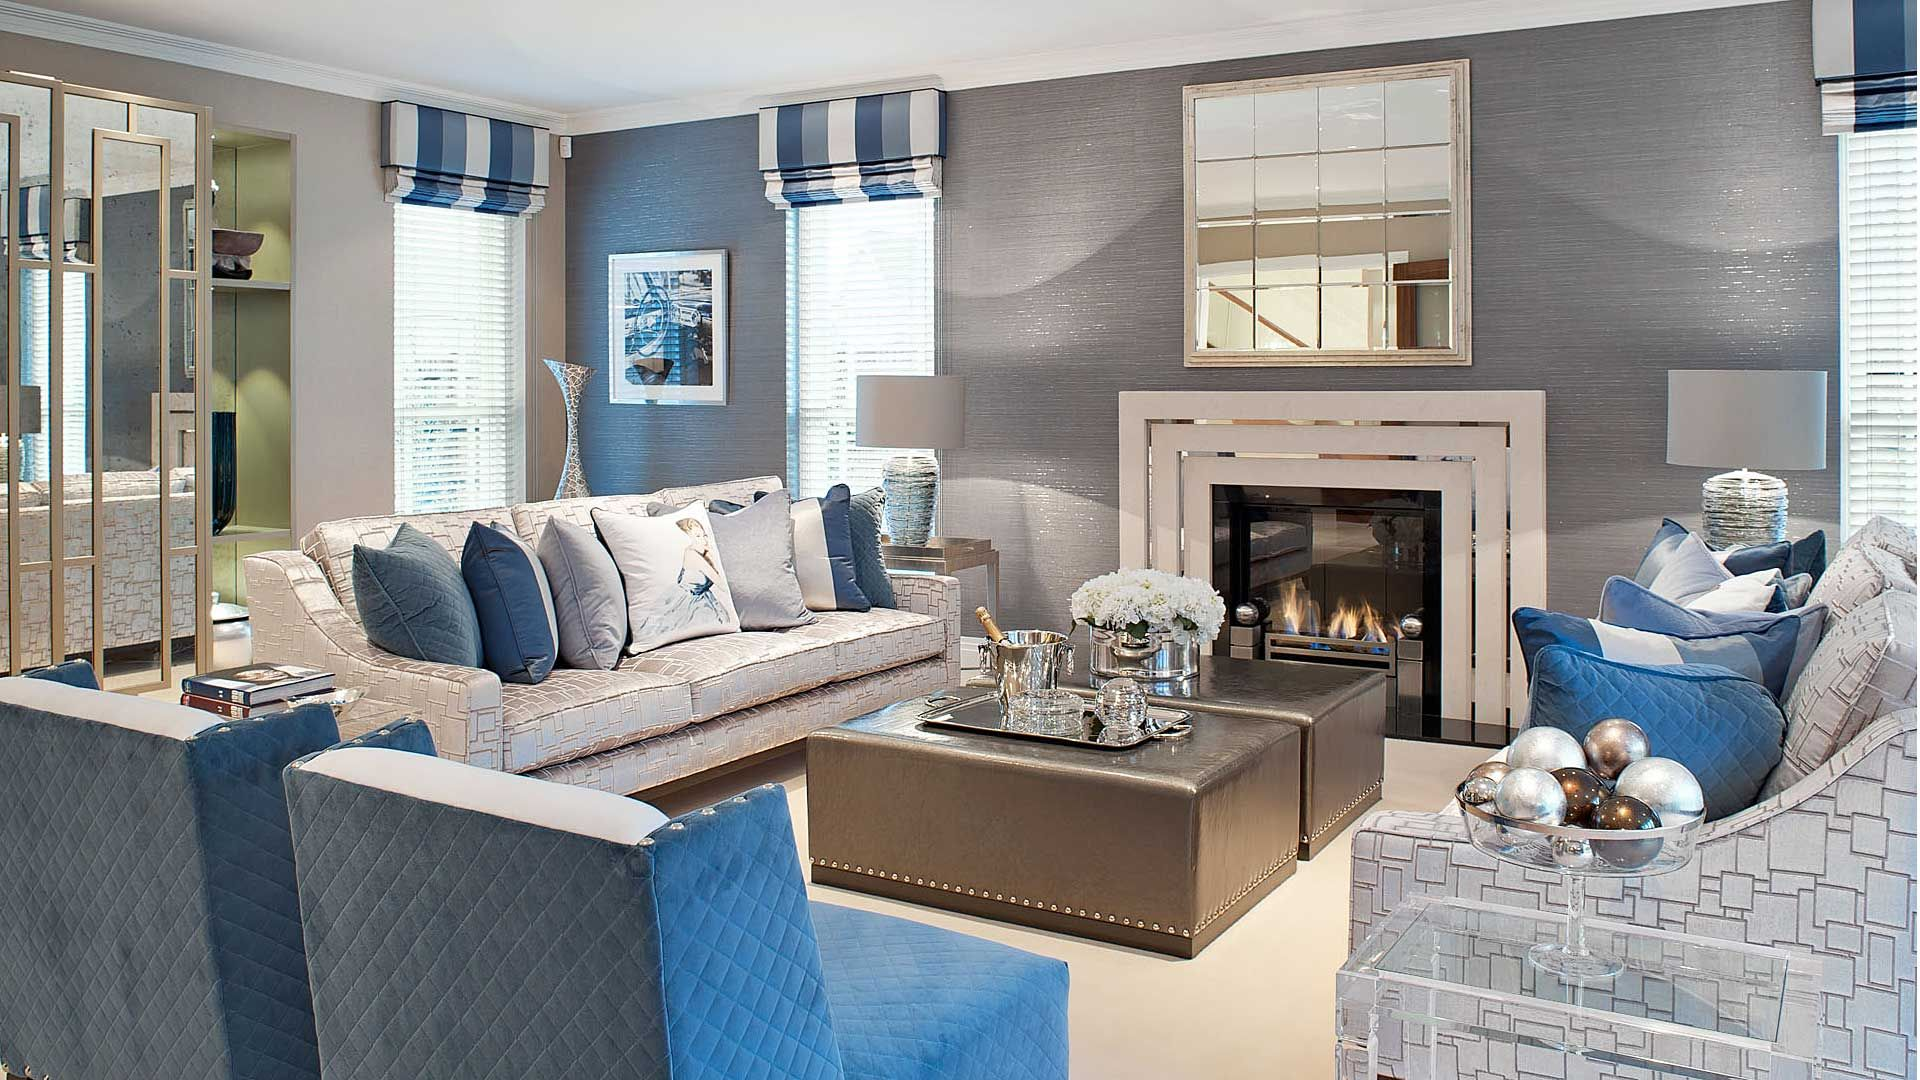 Kingswood Family Home, UK Project, Interior Design Portfolio, Hill House  Interiors Are A London Based Interior Design Company With A Showroom In  Elystan ...